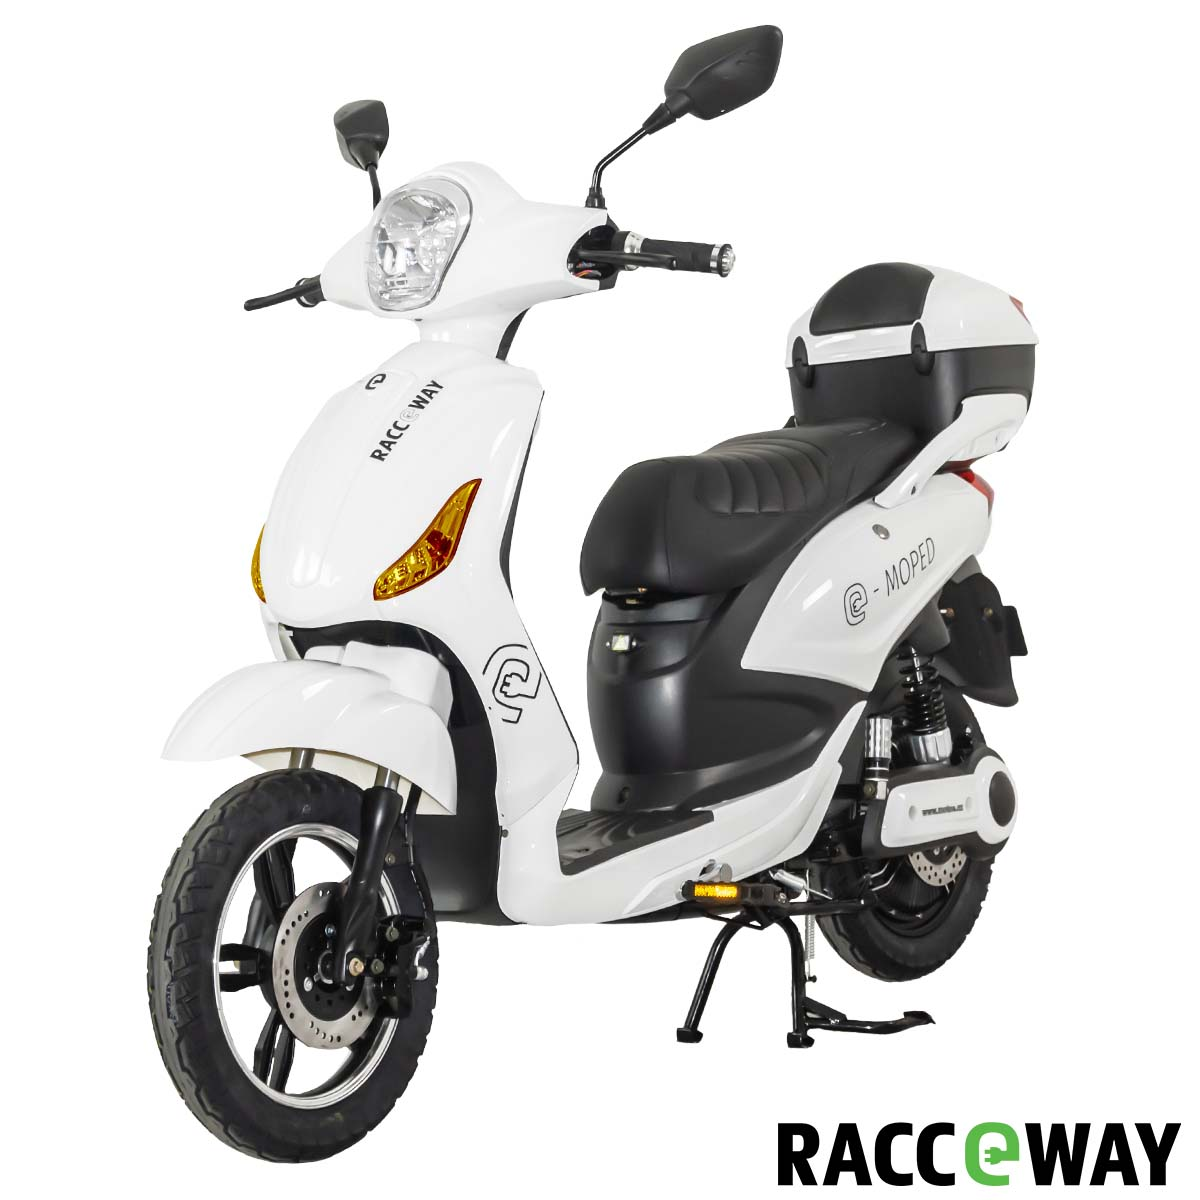 https://www.racceway.cz/inshop/catalogue/products/pictures/motoe-1m-02_a2.jpg?timestamp=20210927085842